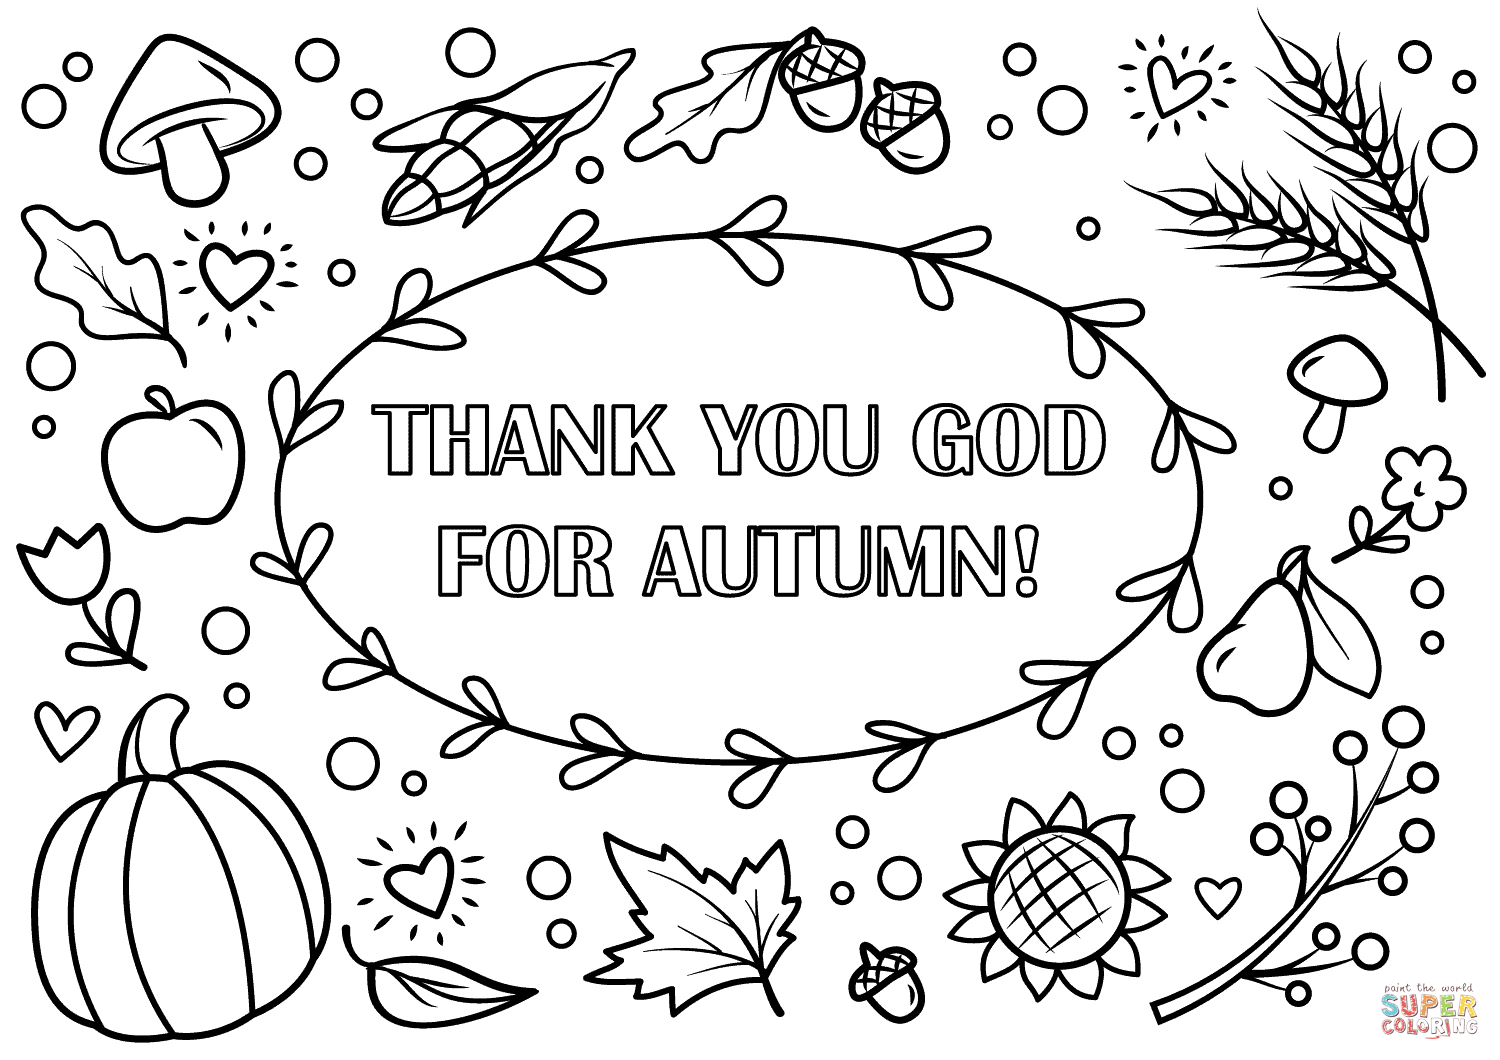 Thank You God For Autumn! Coloring Page From Fall Category